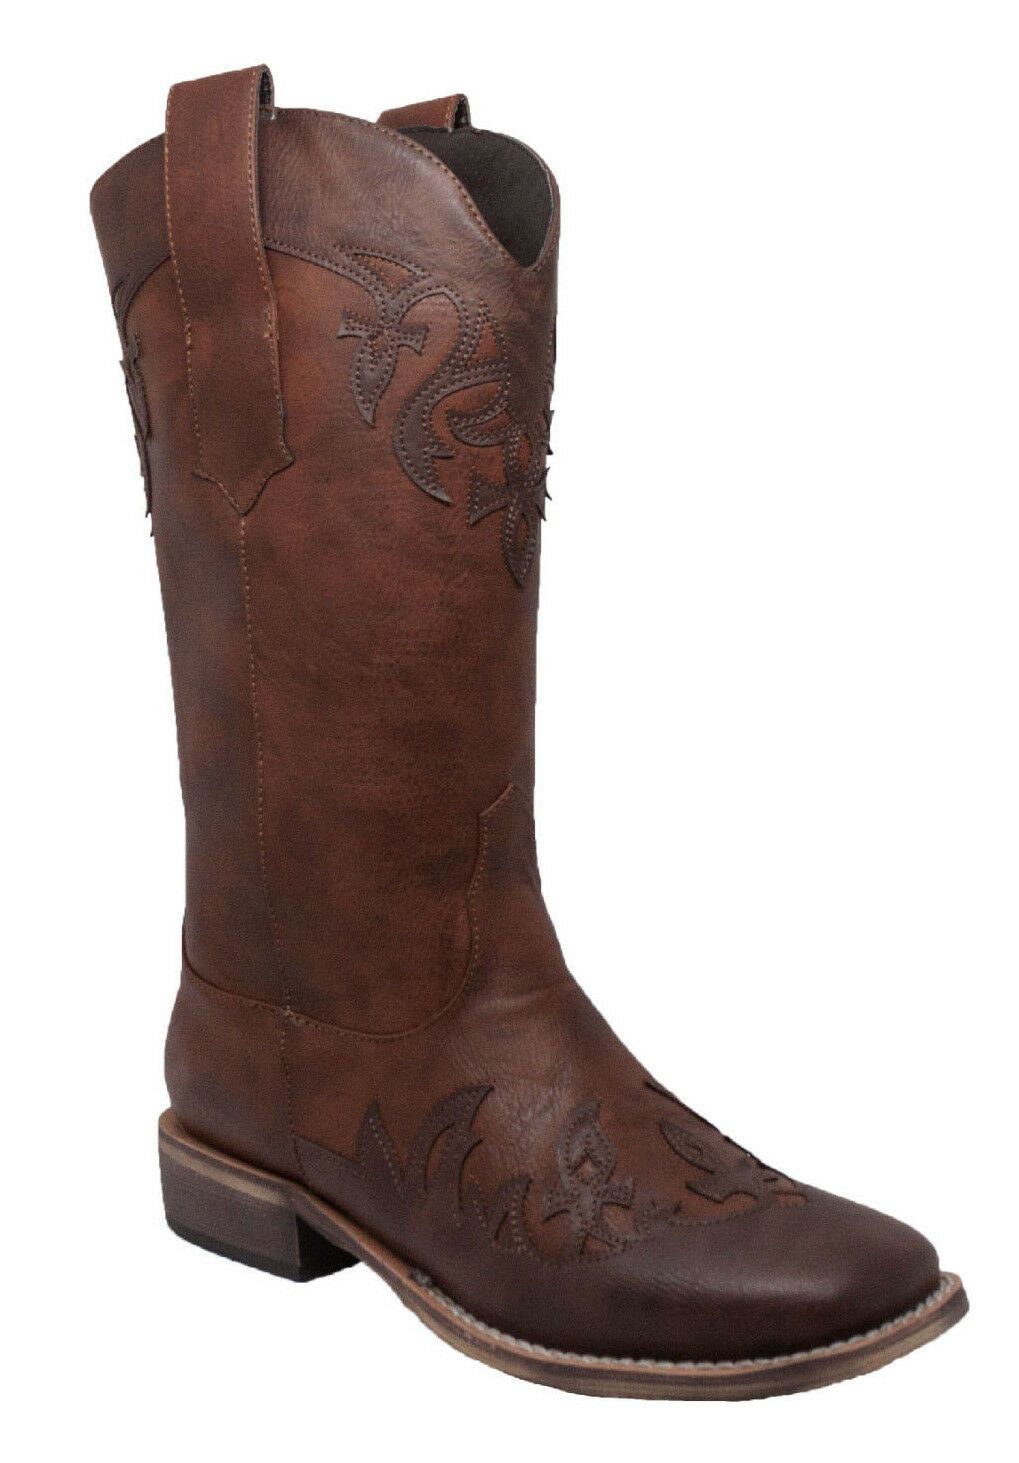 NEW Womens AdTec Cowboy Western Work Boot Riding Casual Dress Boot Brown 8612